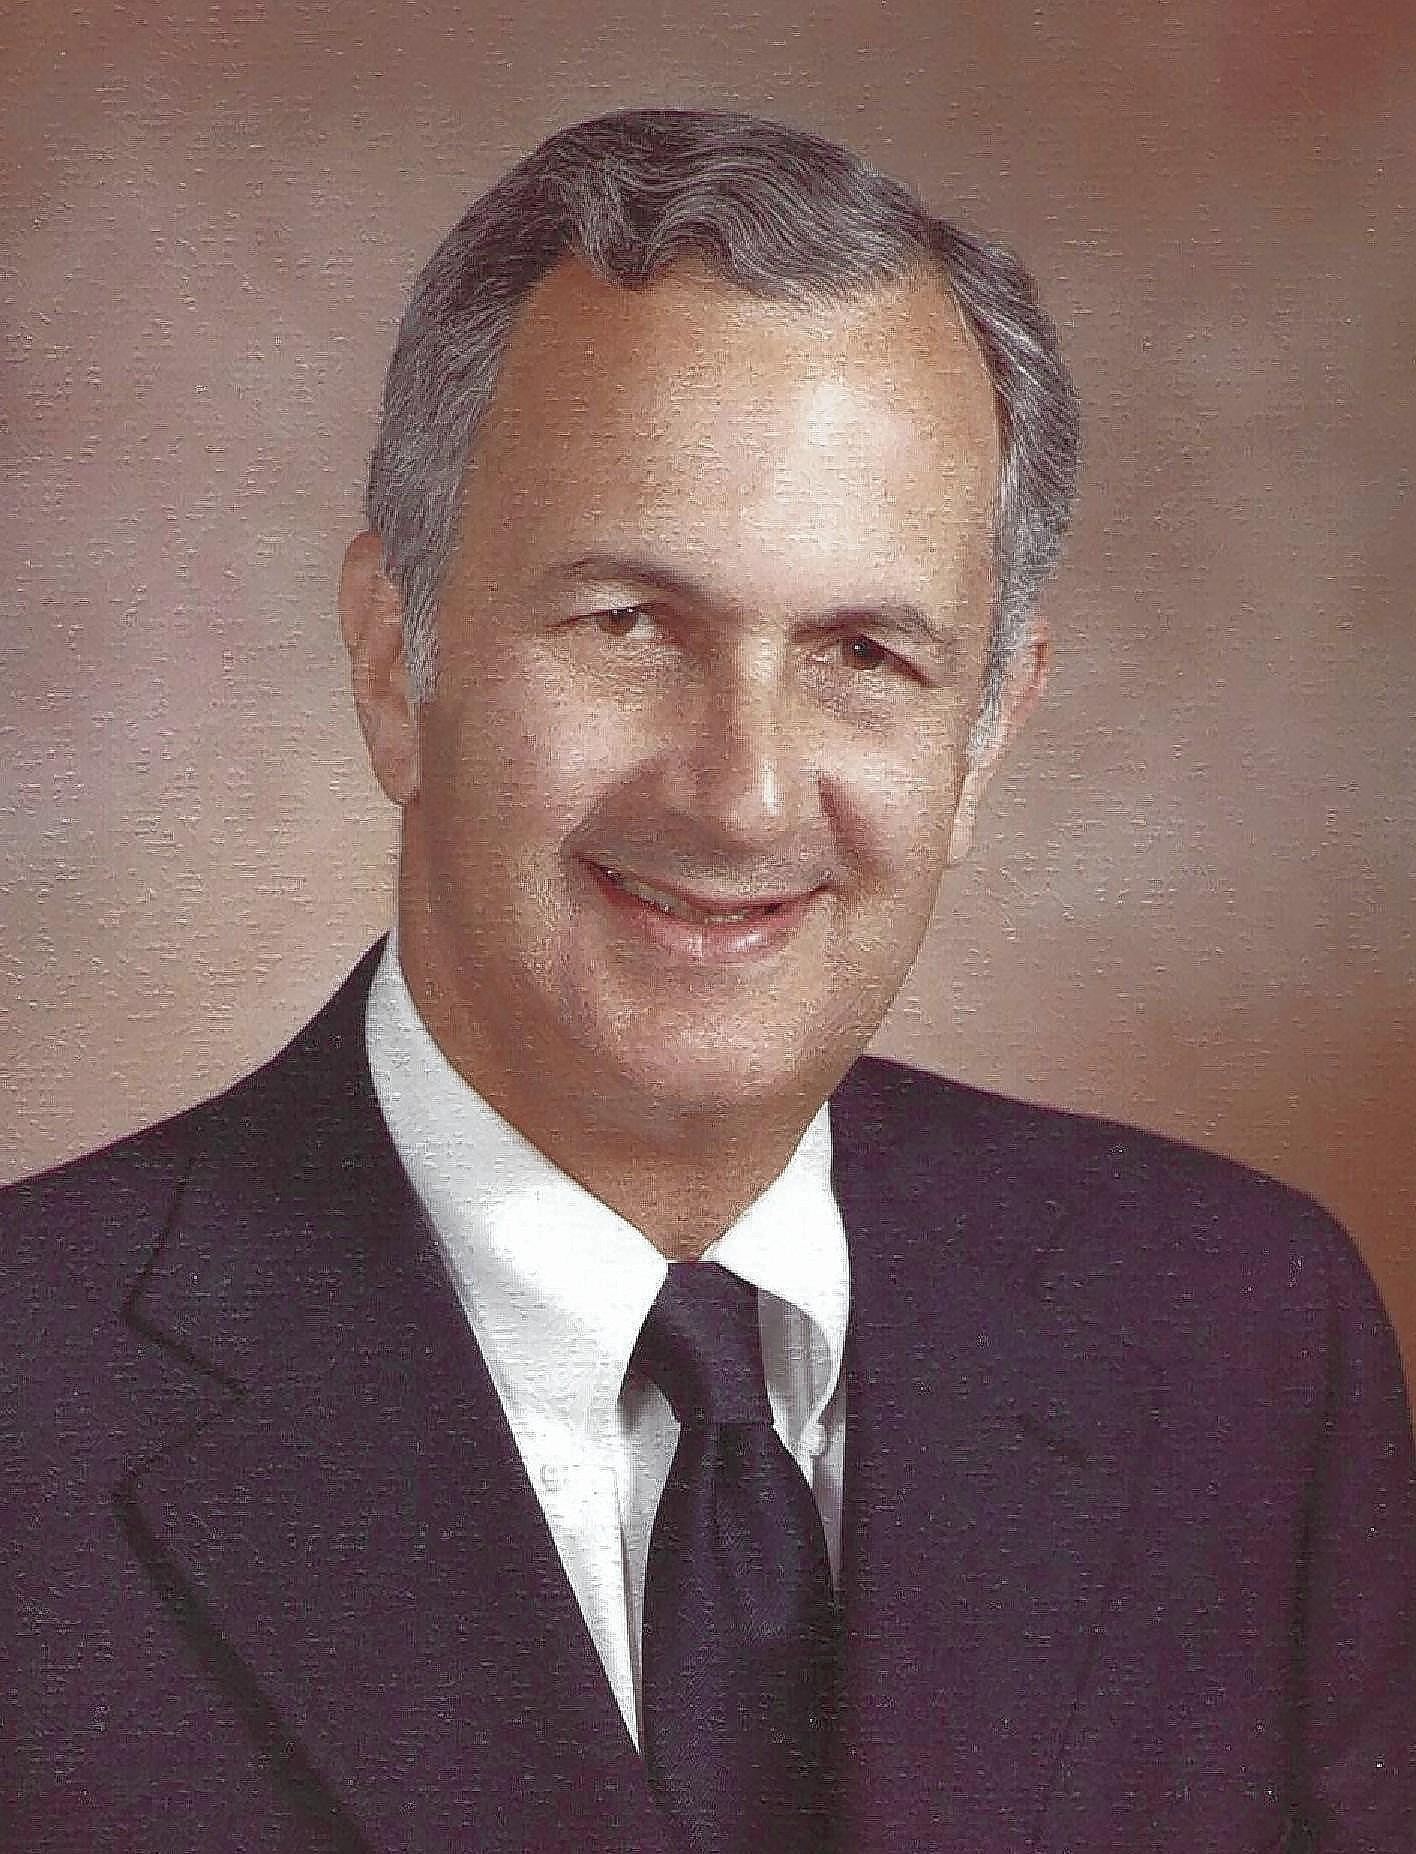 Charles M. Cahn Jr. worked as an attorney for Blades & Rosenfeld for nearly six decades.